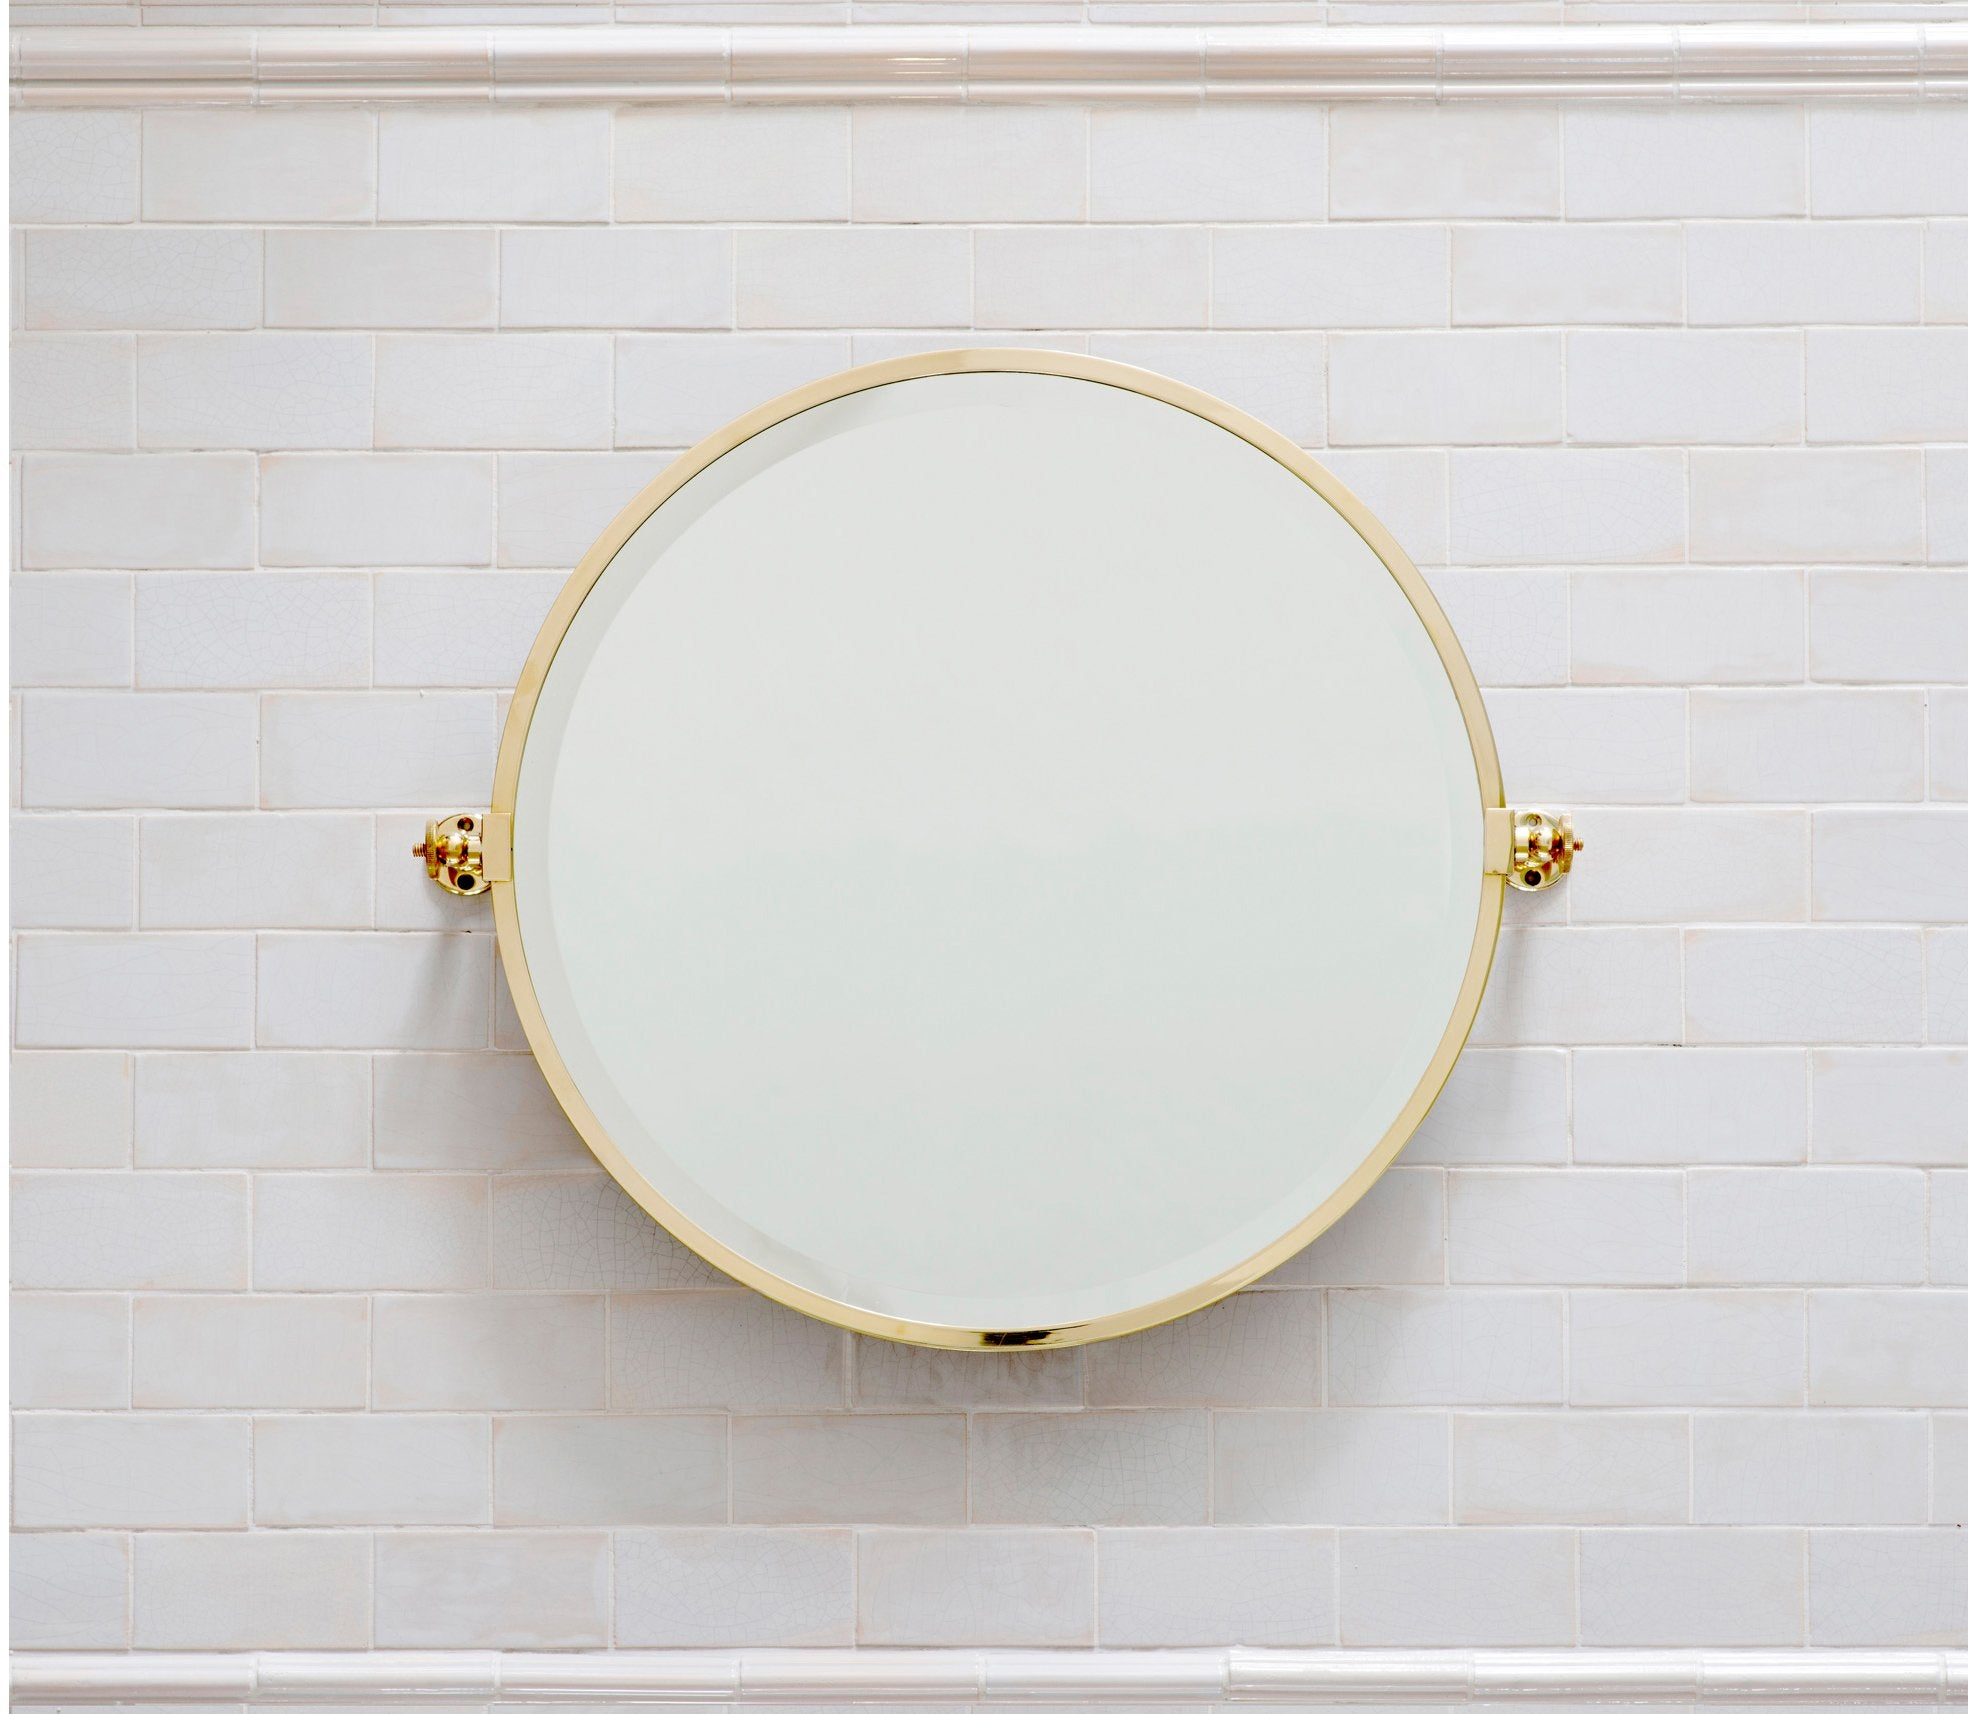 Hanbury Round Mirror Product Image 1